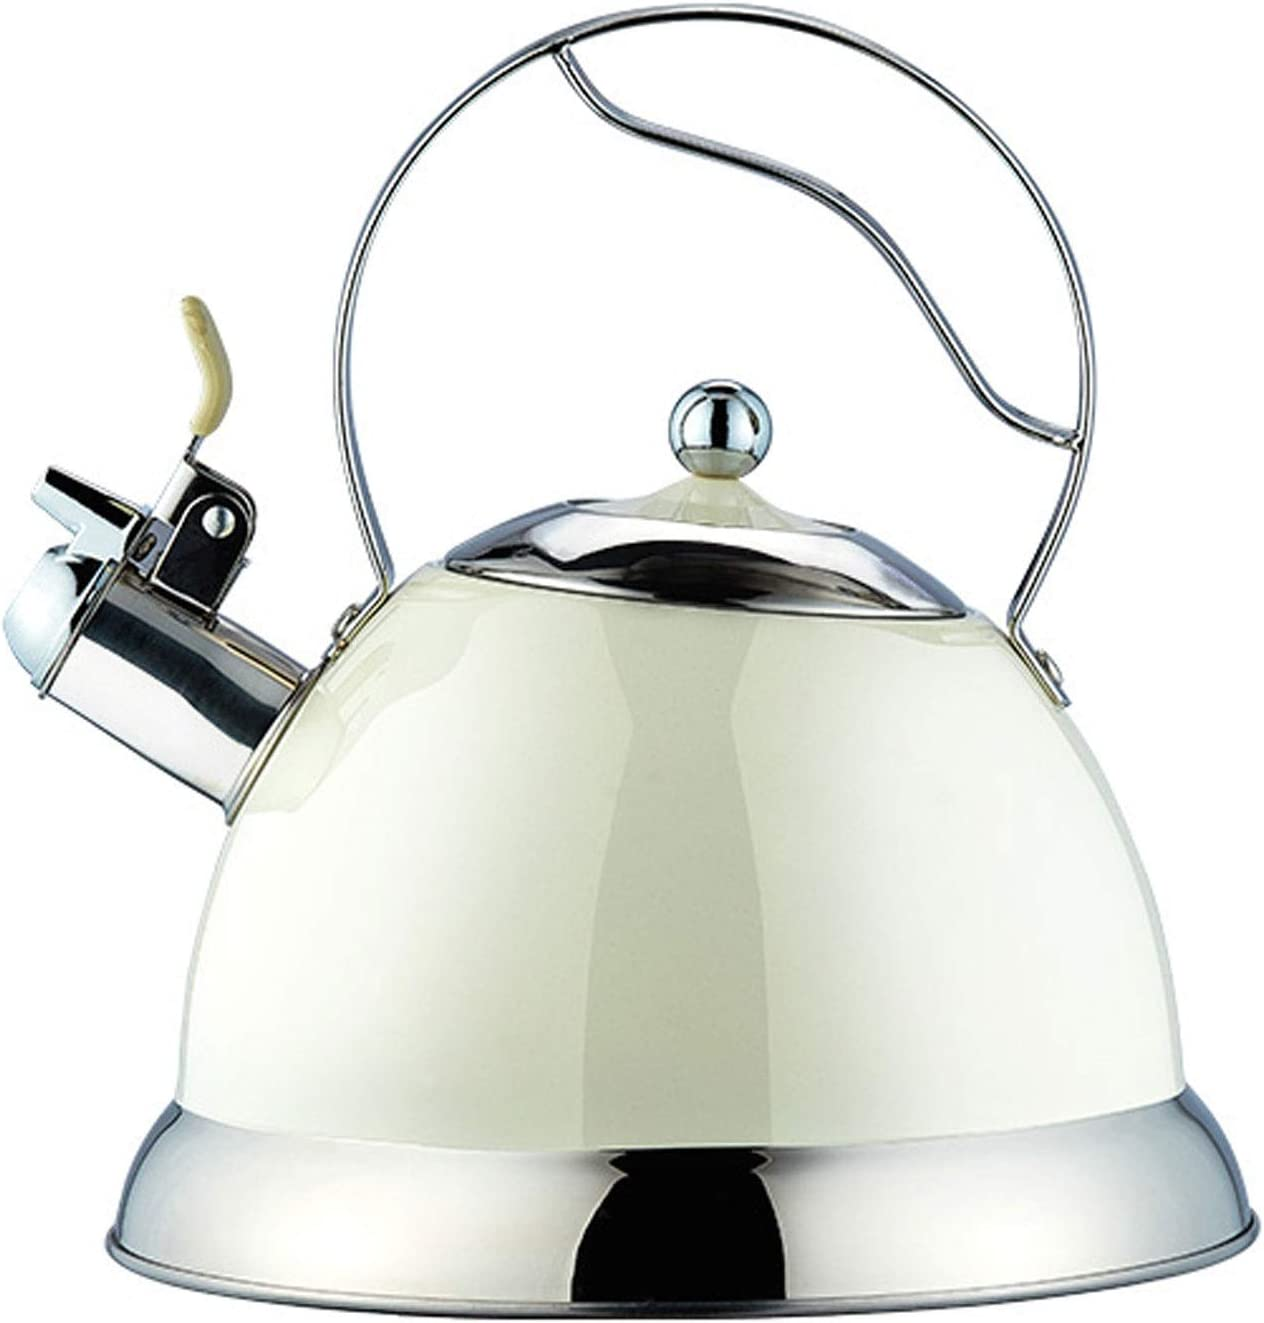 Finally popular brand Whistling Kettles Stove Tea Kettle Stainless Te Steel Limited time trial price